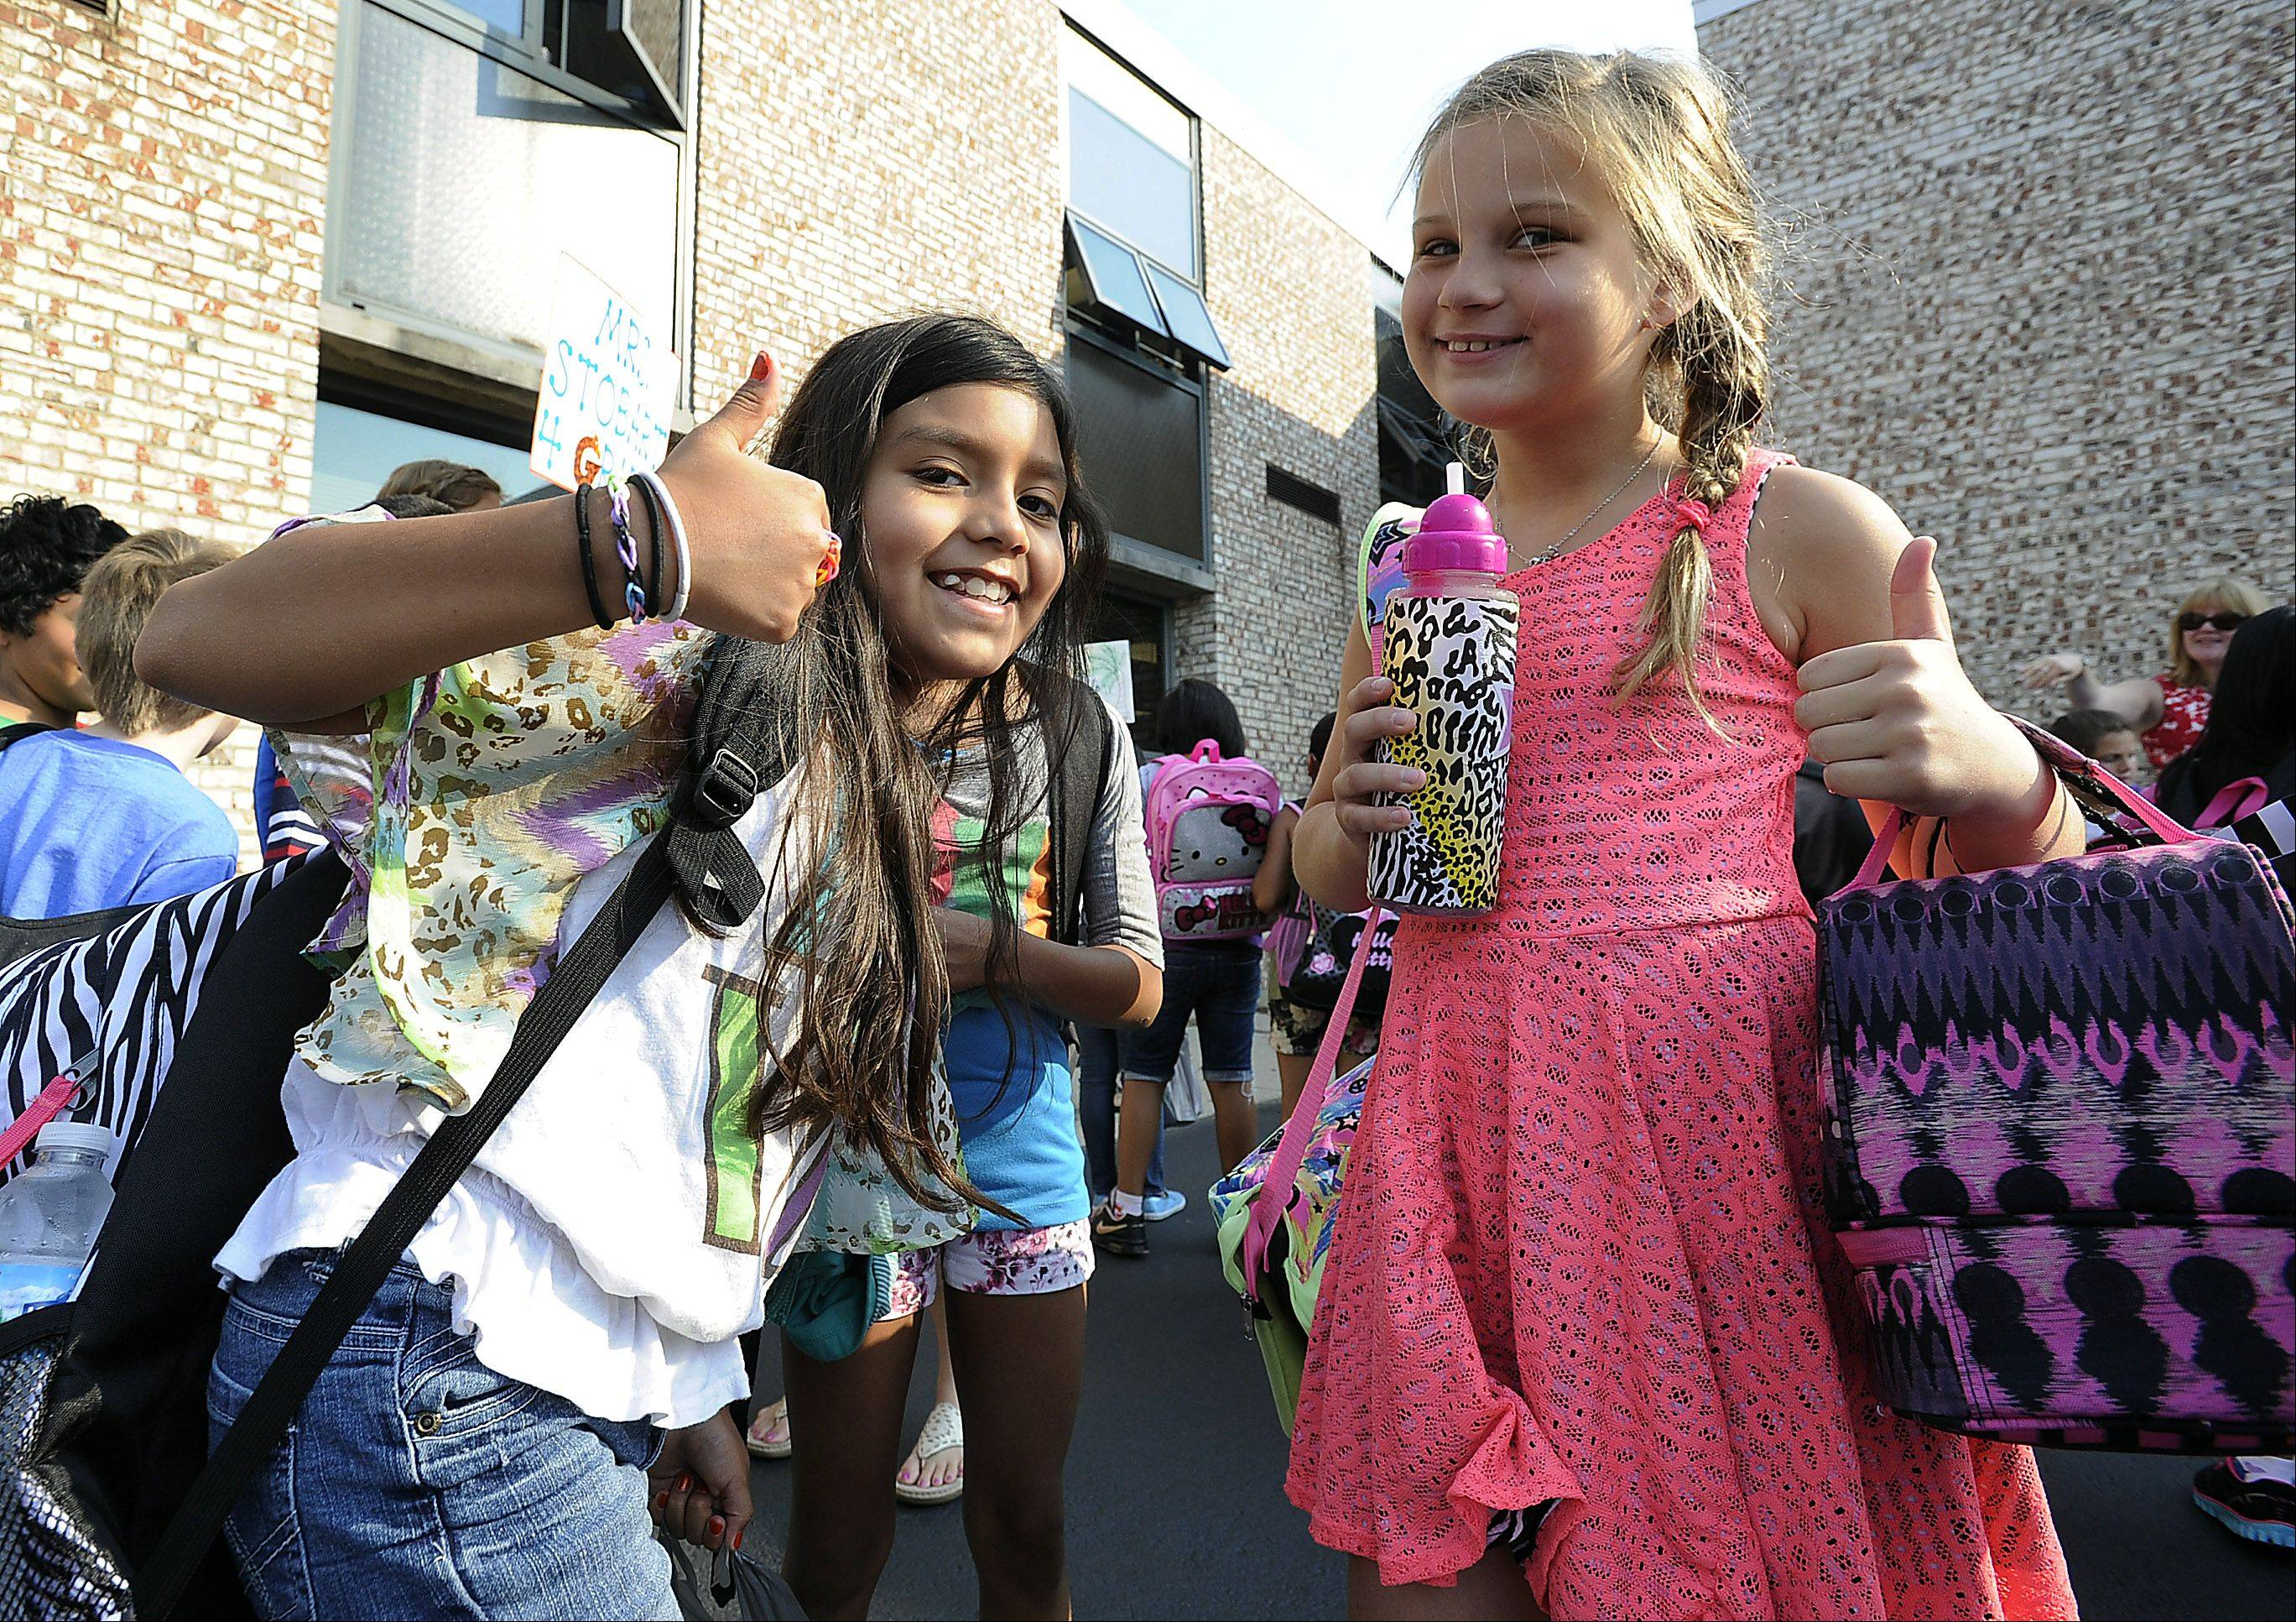 Hanna Gajek, 9, right, and her friend Samai Manzo, 9, give a big thumbs-up to the first day back to the 4th grade at Field Elementary School in Wheeling on Wednesday.